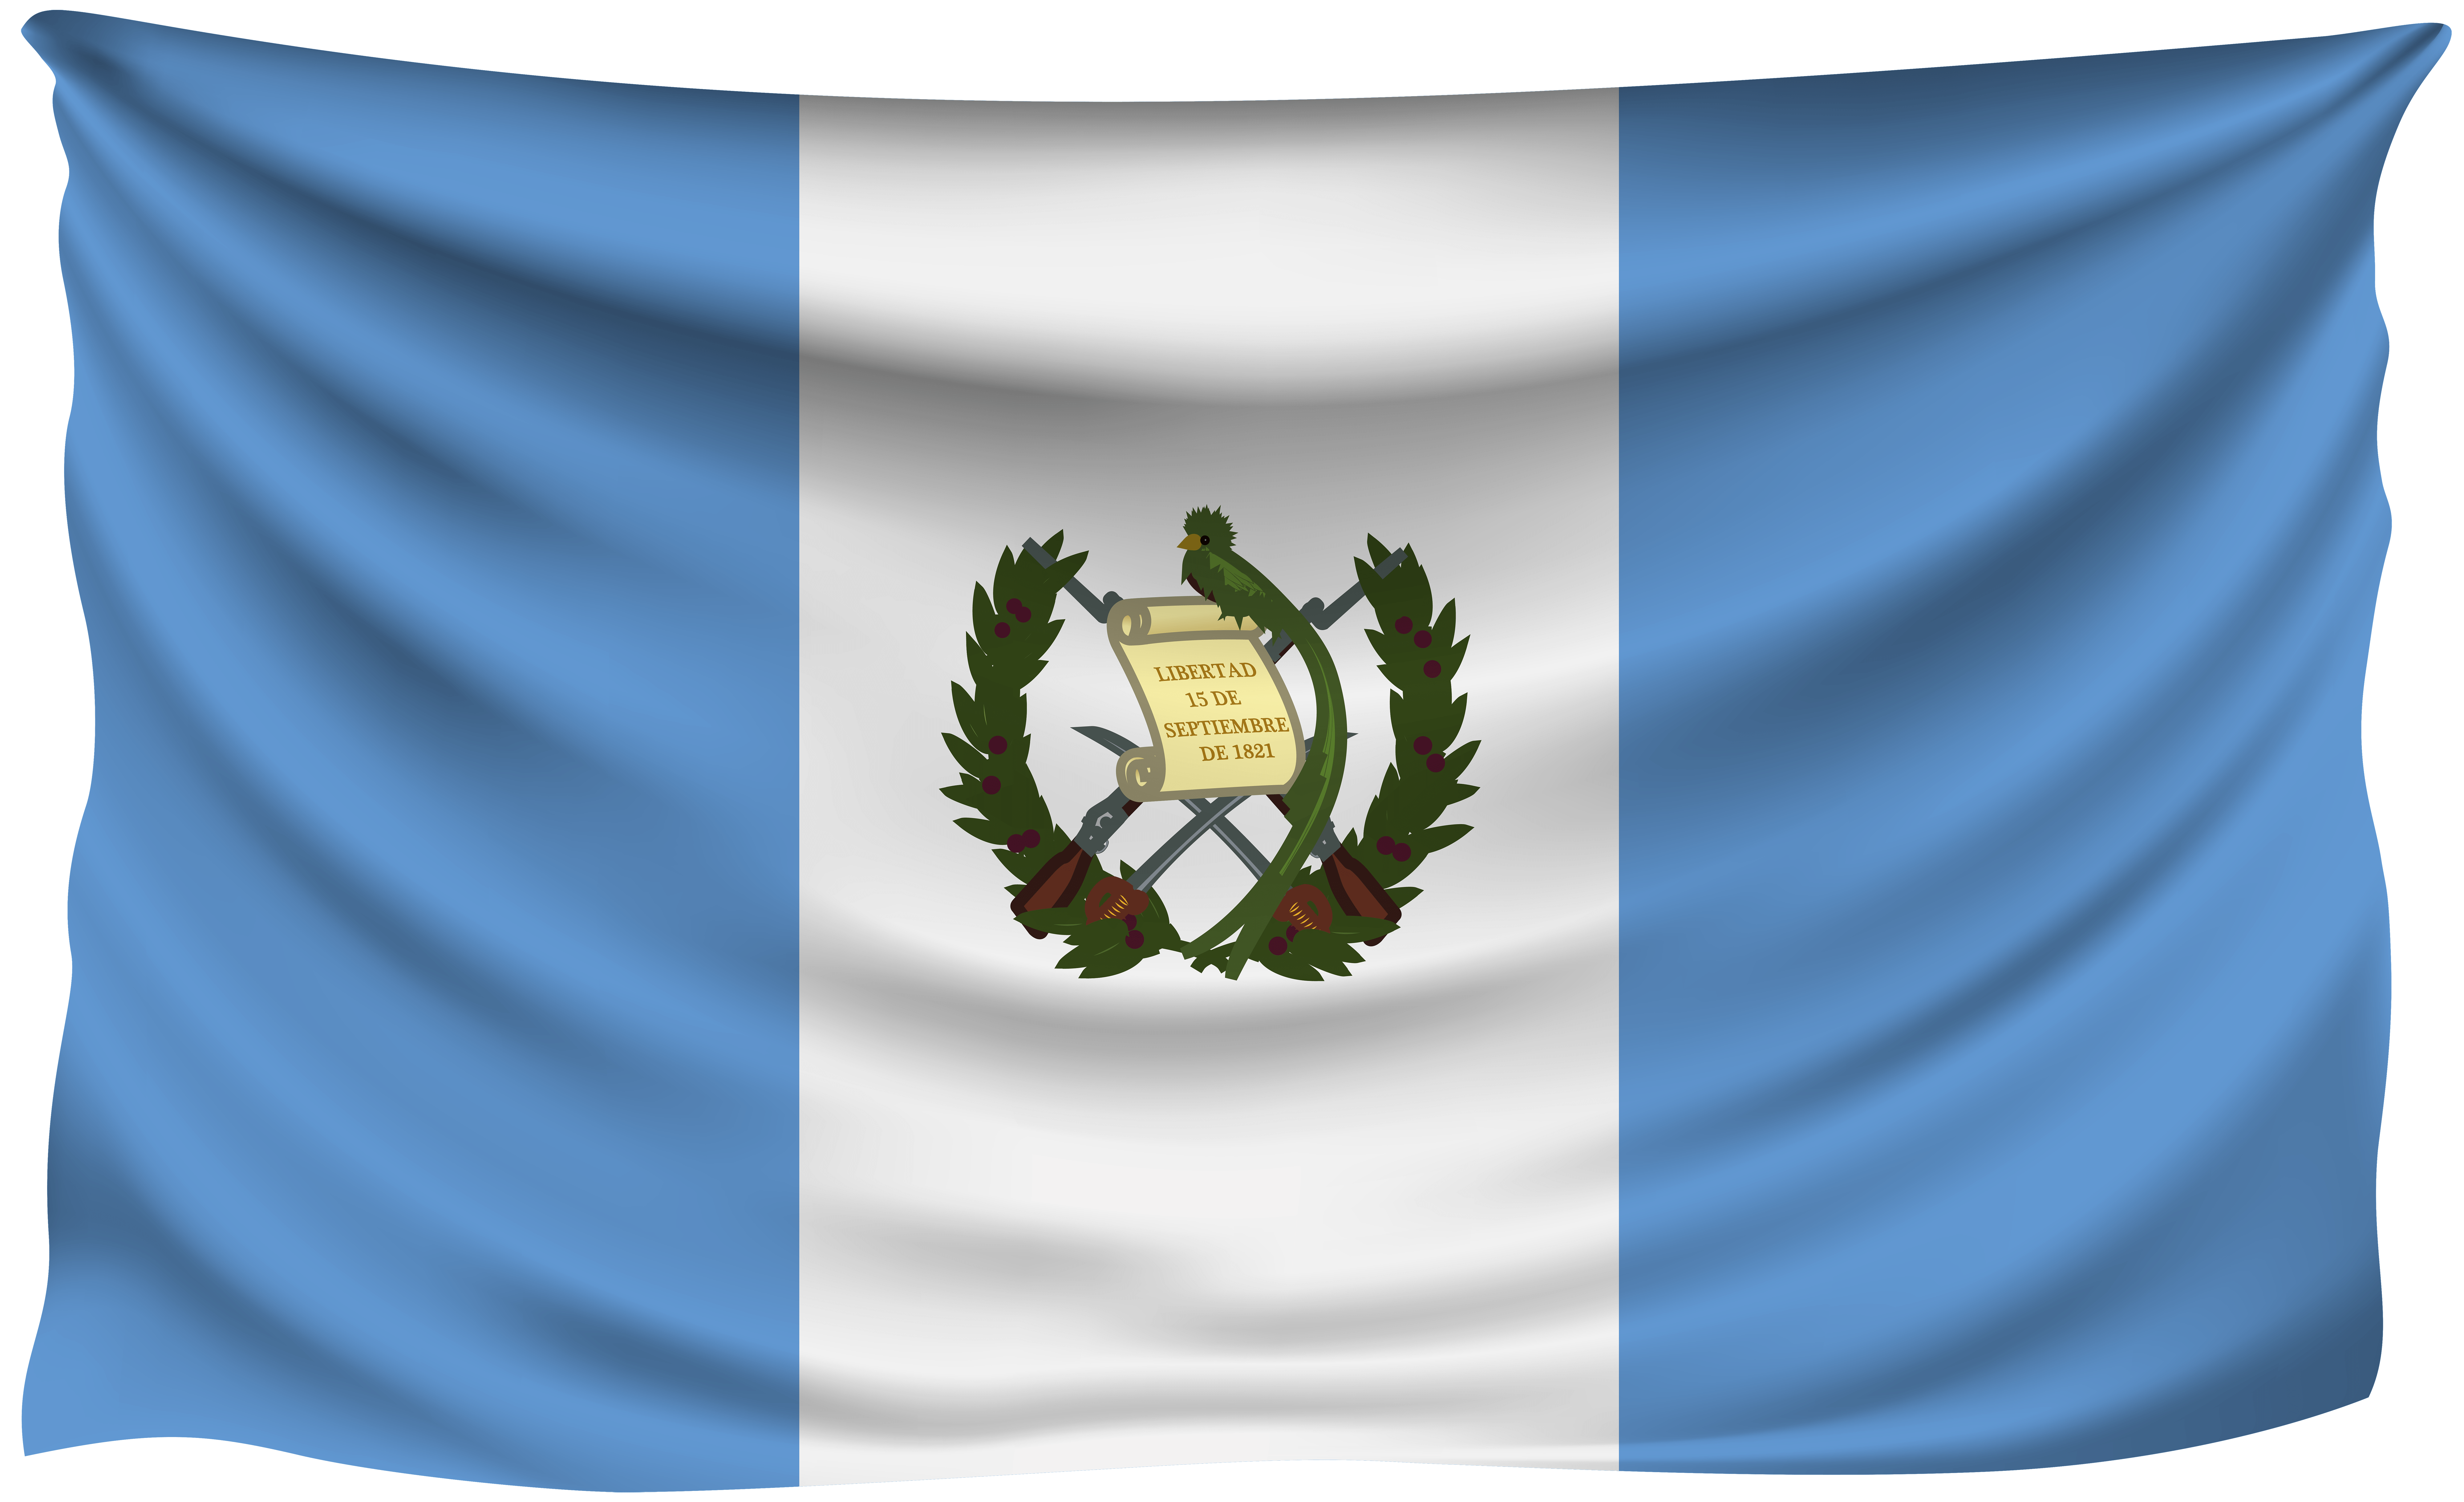 Guatemala Flag Wallpapers For Iphone ✓ Labzada Wallpapers